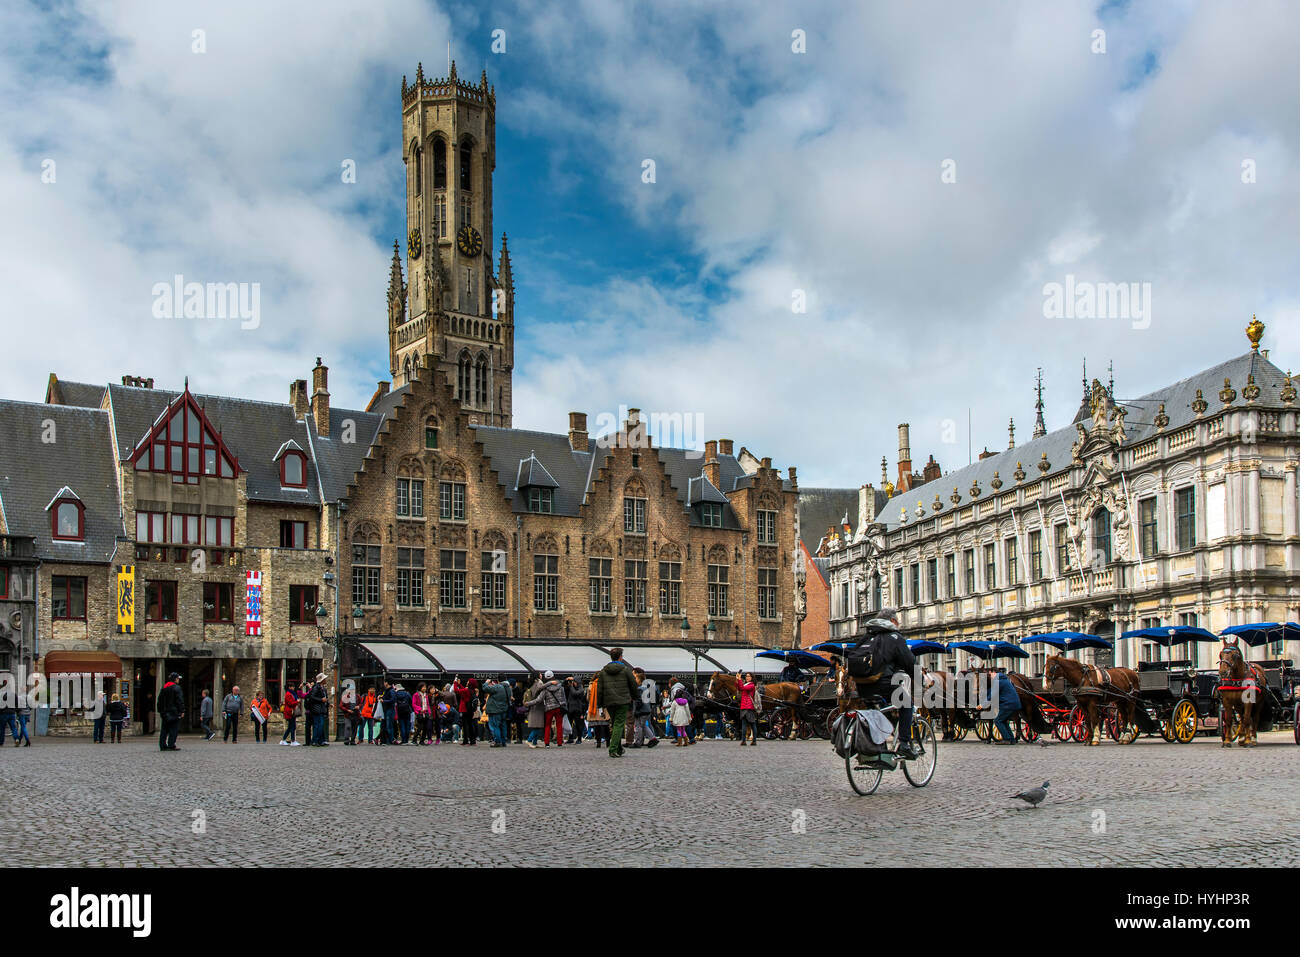 Burg square with Belfort tower in the background, Bruges, West Flanders, Belgium - Stock Image